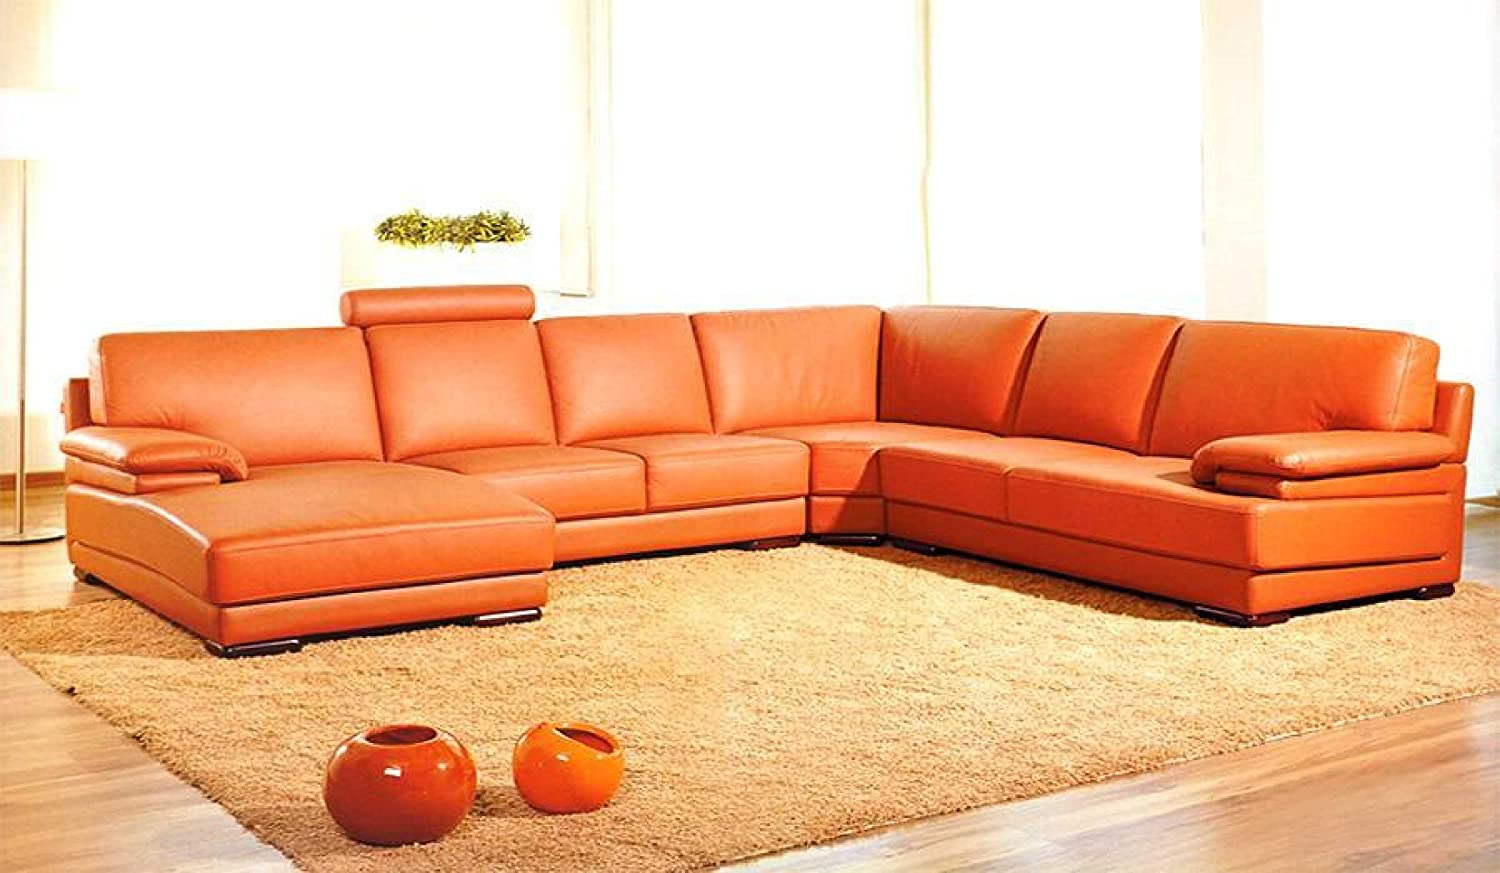 sofas contemporary how design to match furniture leather arms sectional modern sofa